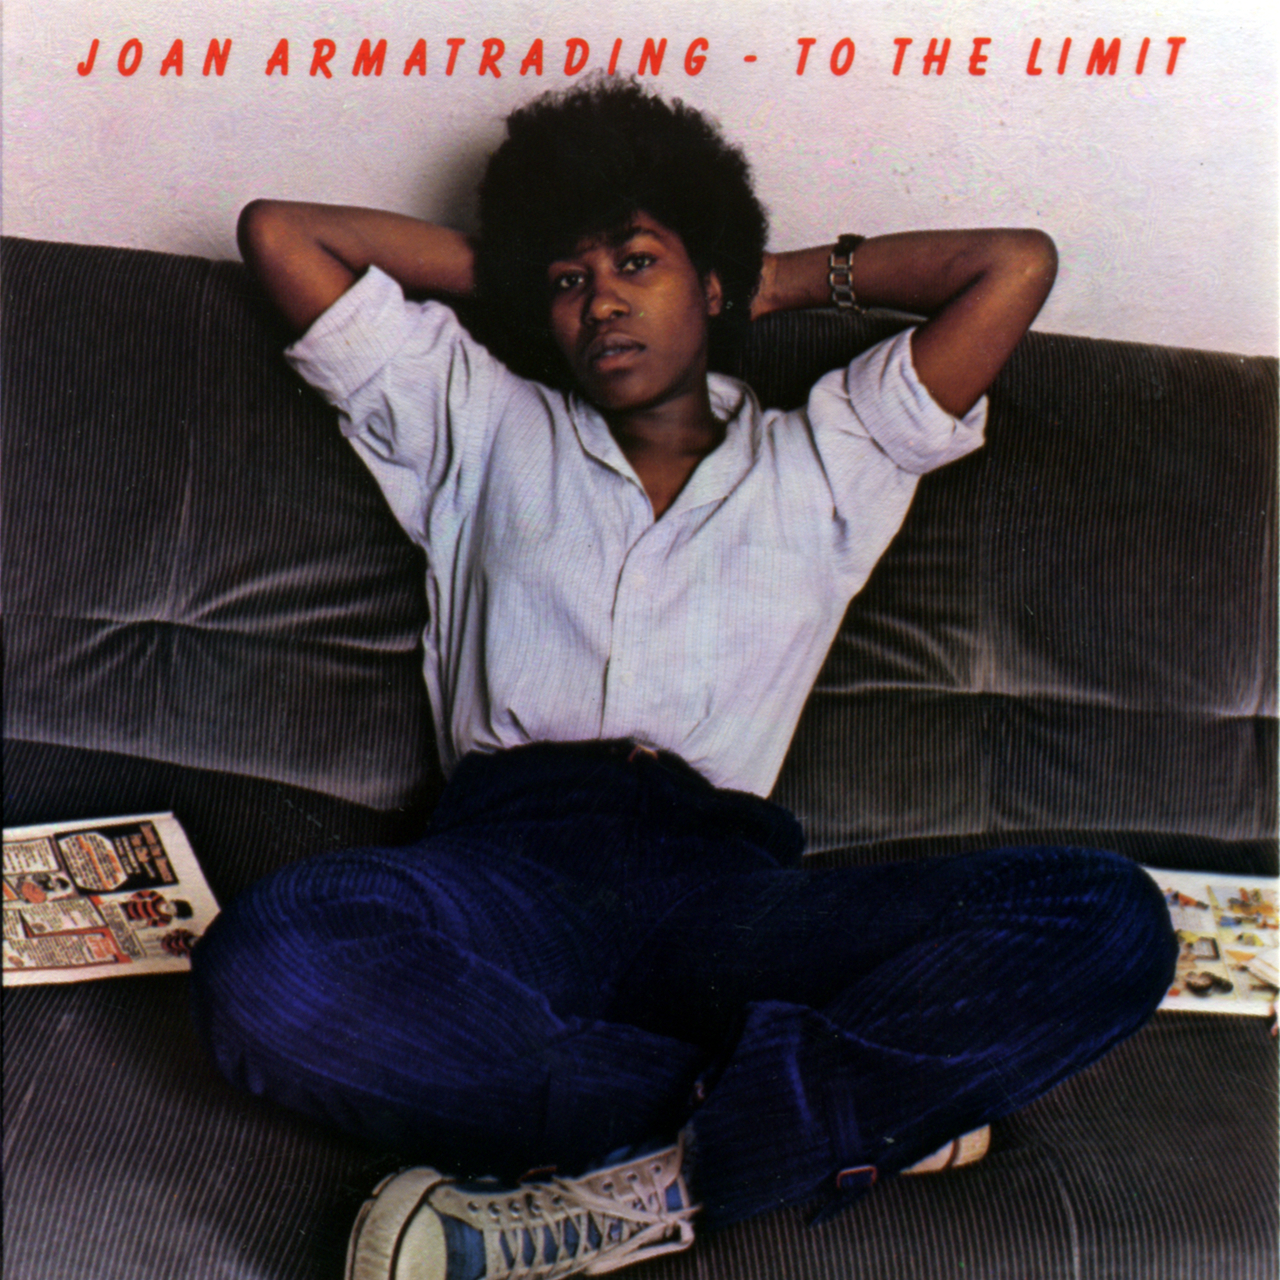 Armatrading, Joan To The Limit Vinyl